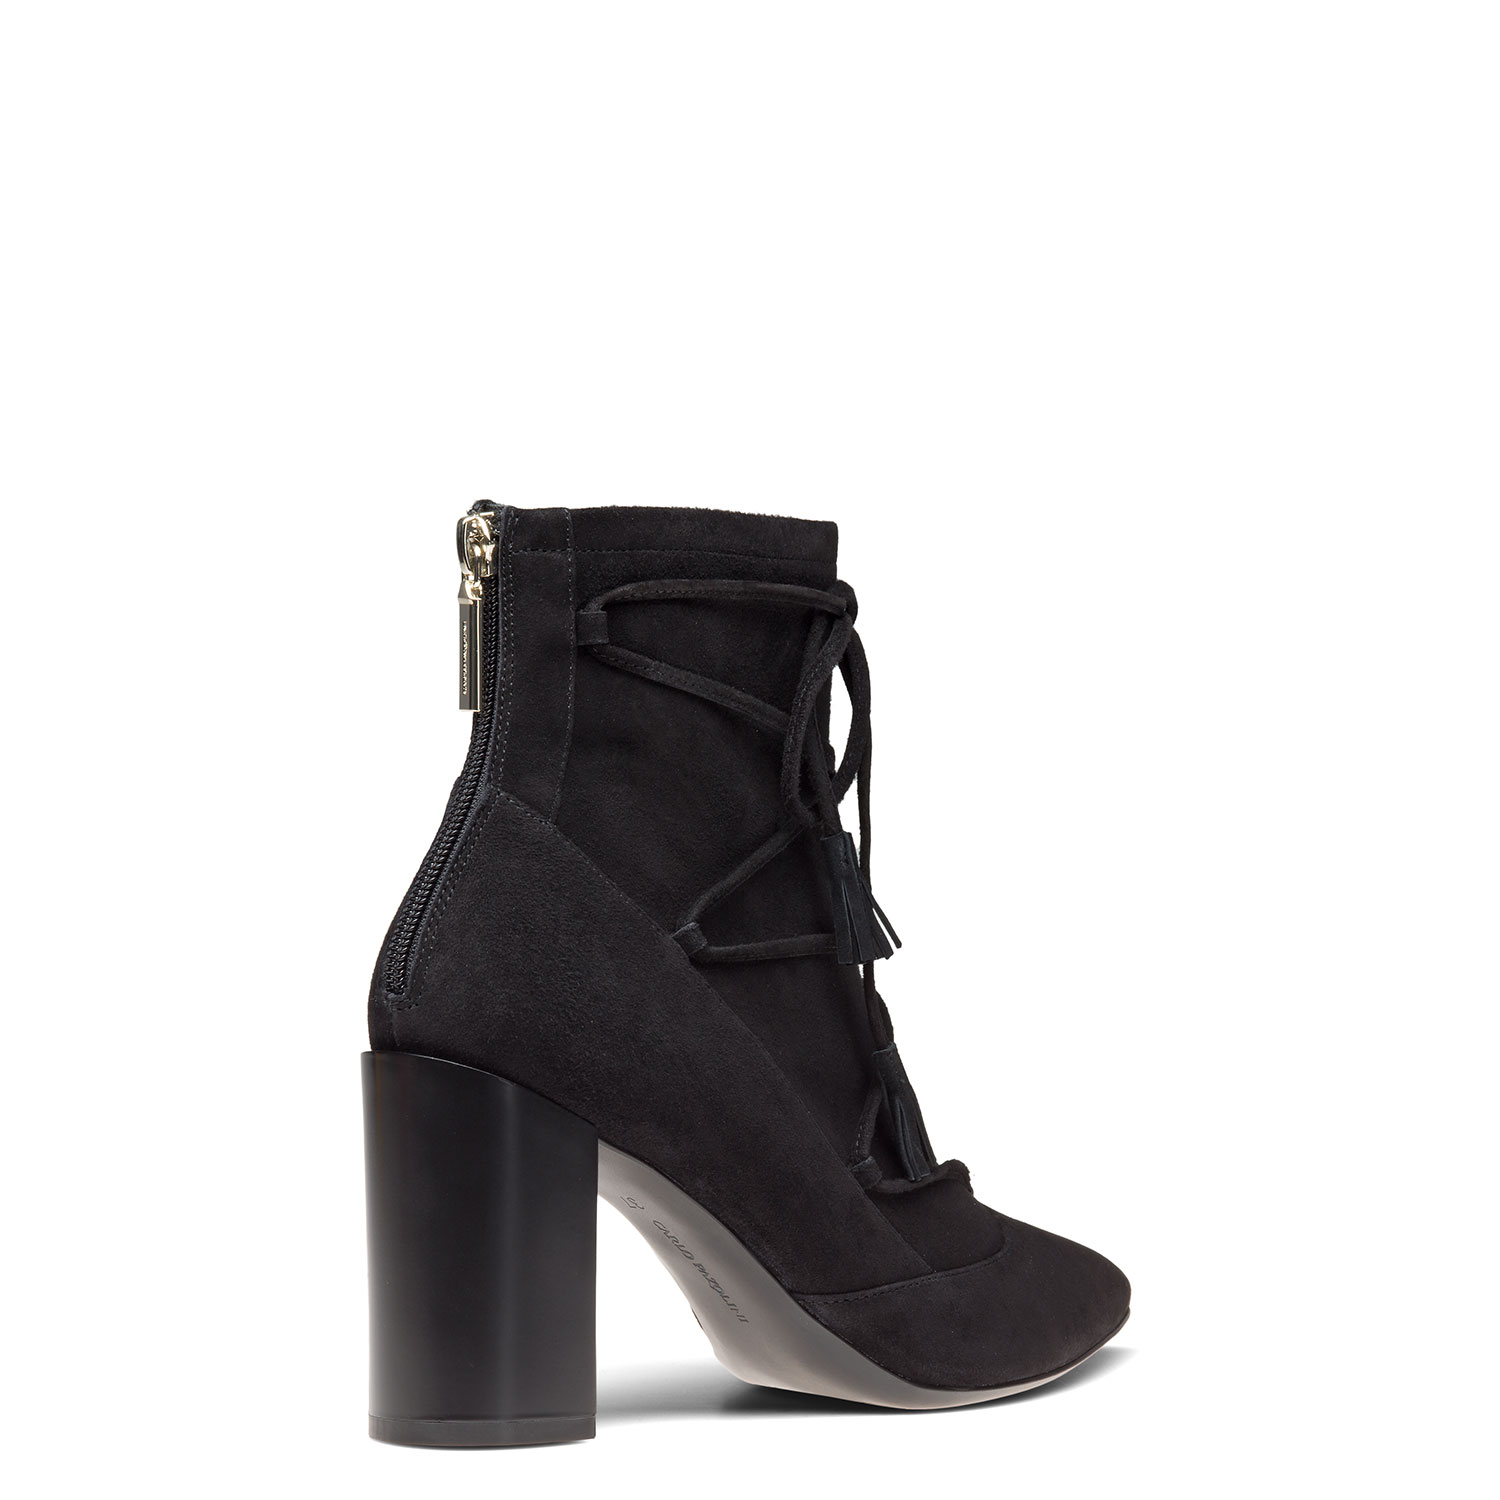 Women's ankle boots CARLO PAZOLINI FL-GET3-1